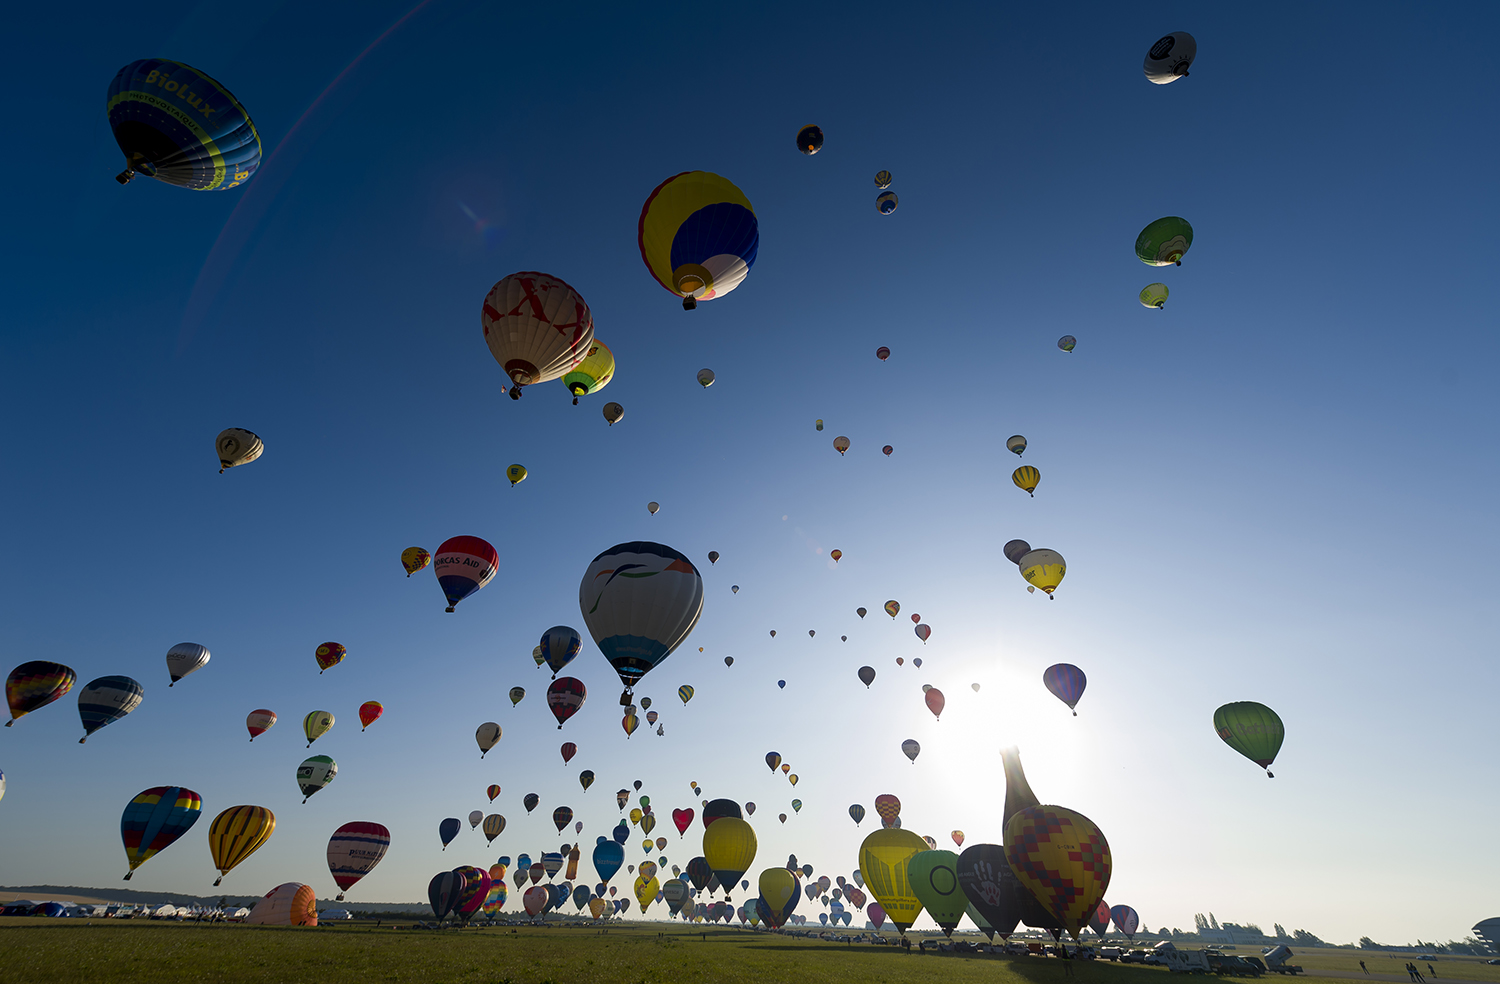 More than 400 hot air balloons take off from the Chambley-Bussieres airbase in eastern France during a failed attempt to break the simultaneous air-balloon takeoff world record on July 29. JEAN-CHRISTOPHE VERHAEGEN/AFP/Getty Images